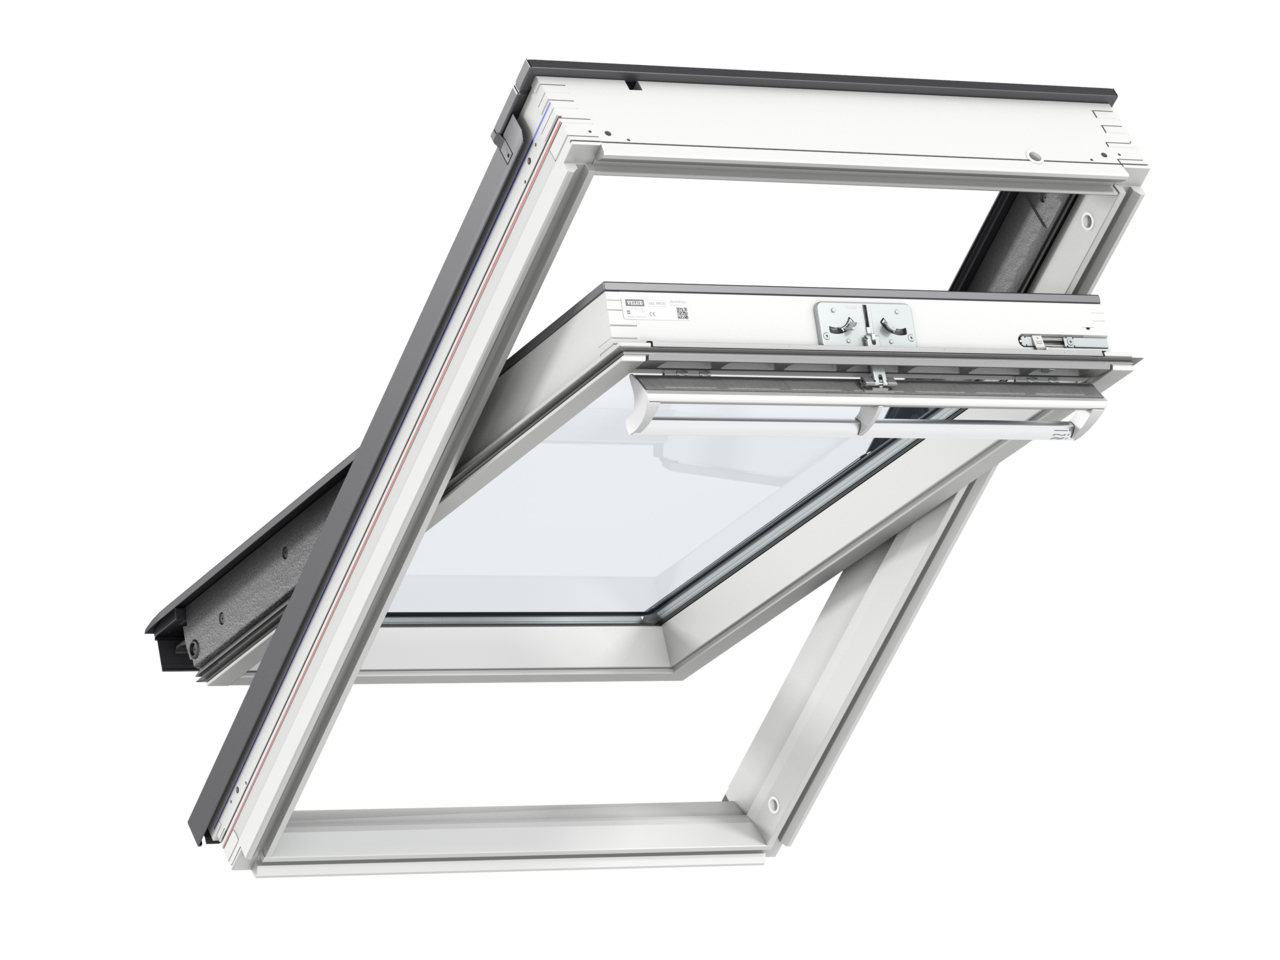 Velux GGL UK08 1340 x 1400mm Centre Pivot 66 Pane Roof Window - White Painted